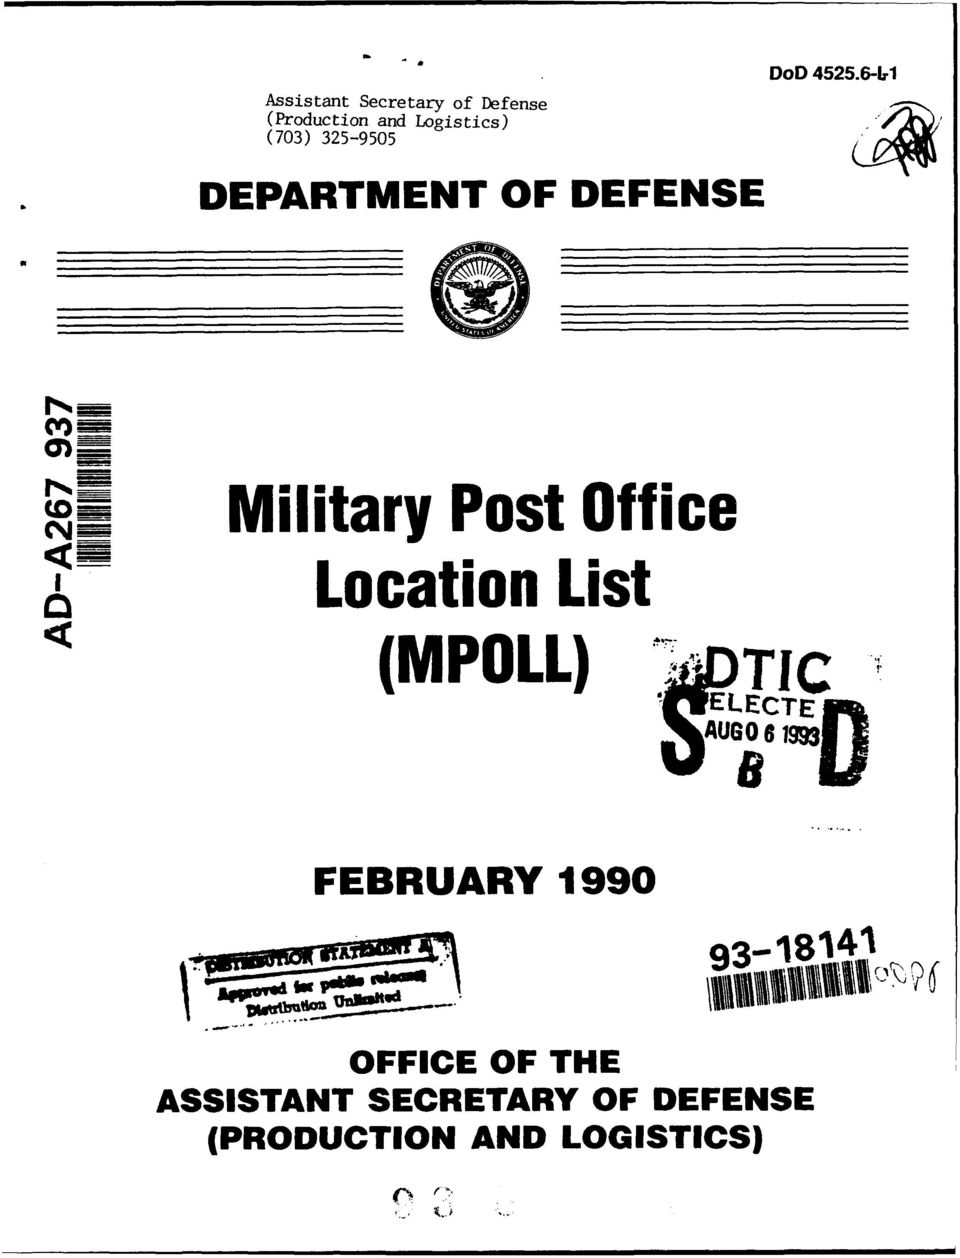 6-L1 DEPARTMENT OF DEFENSE Z_ Military Post Office, Location List